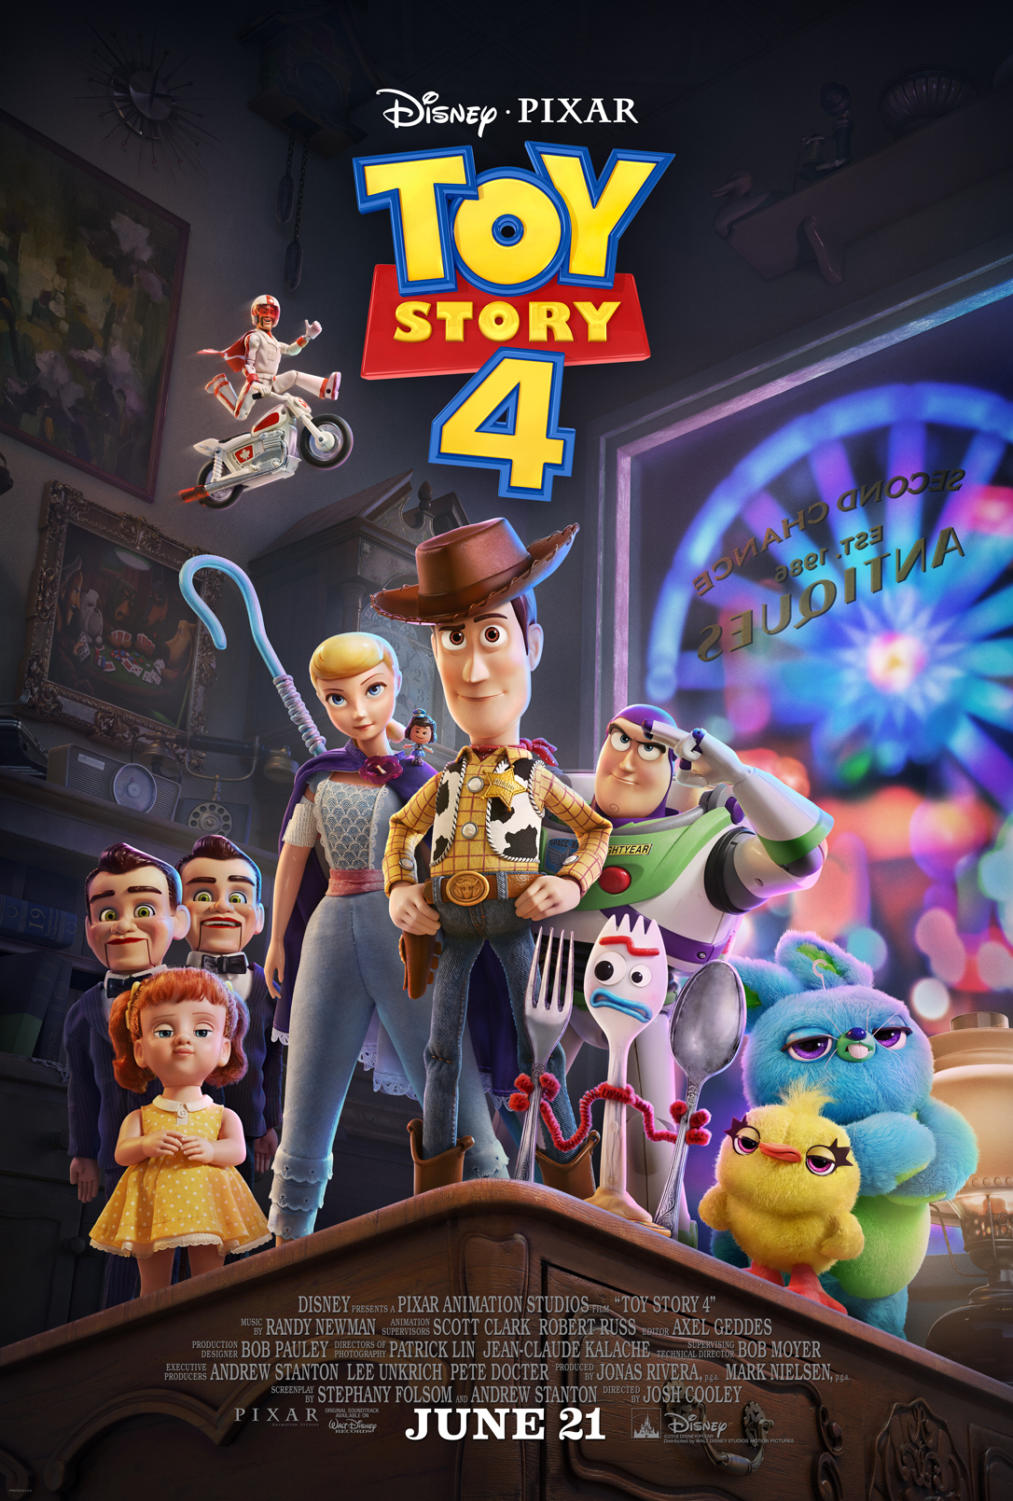 Toy Story 4 movie poster.